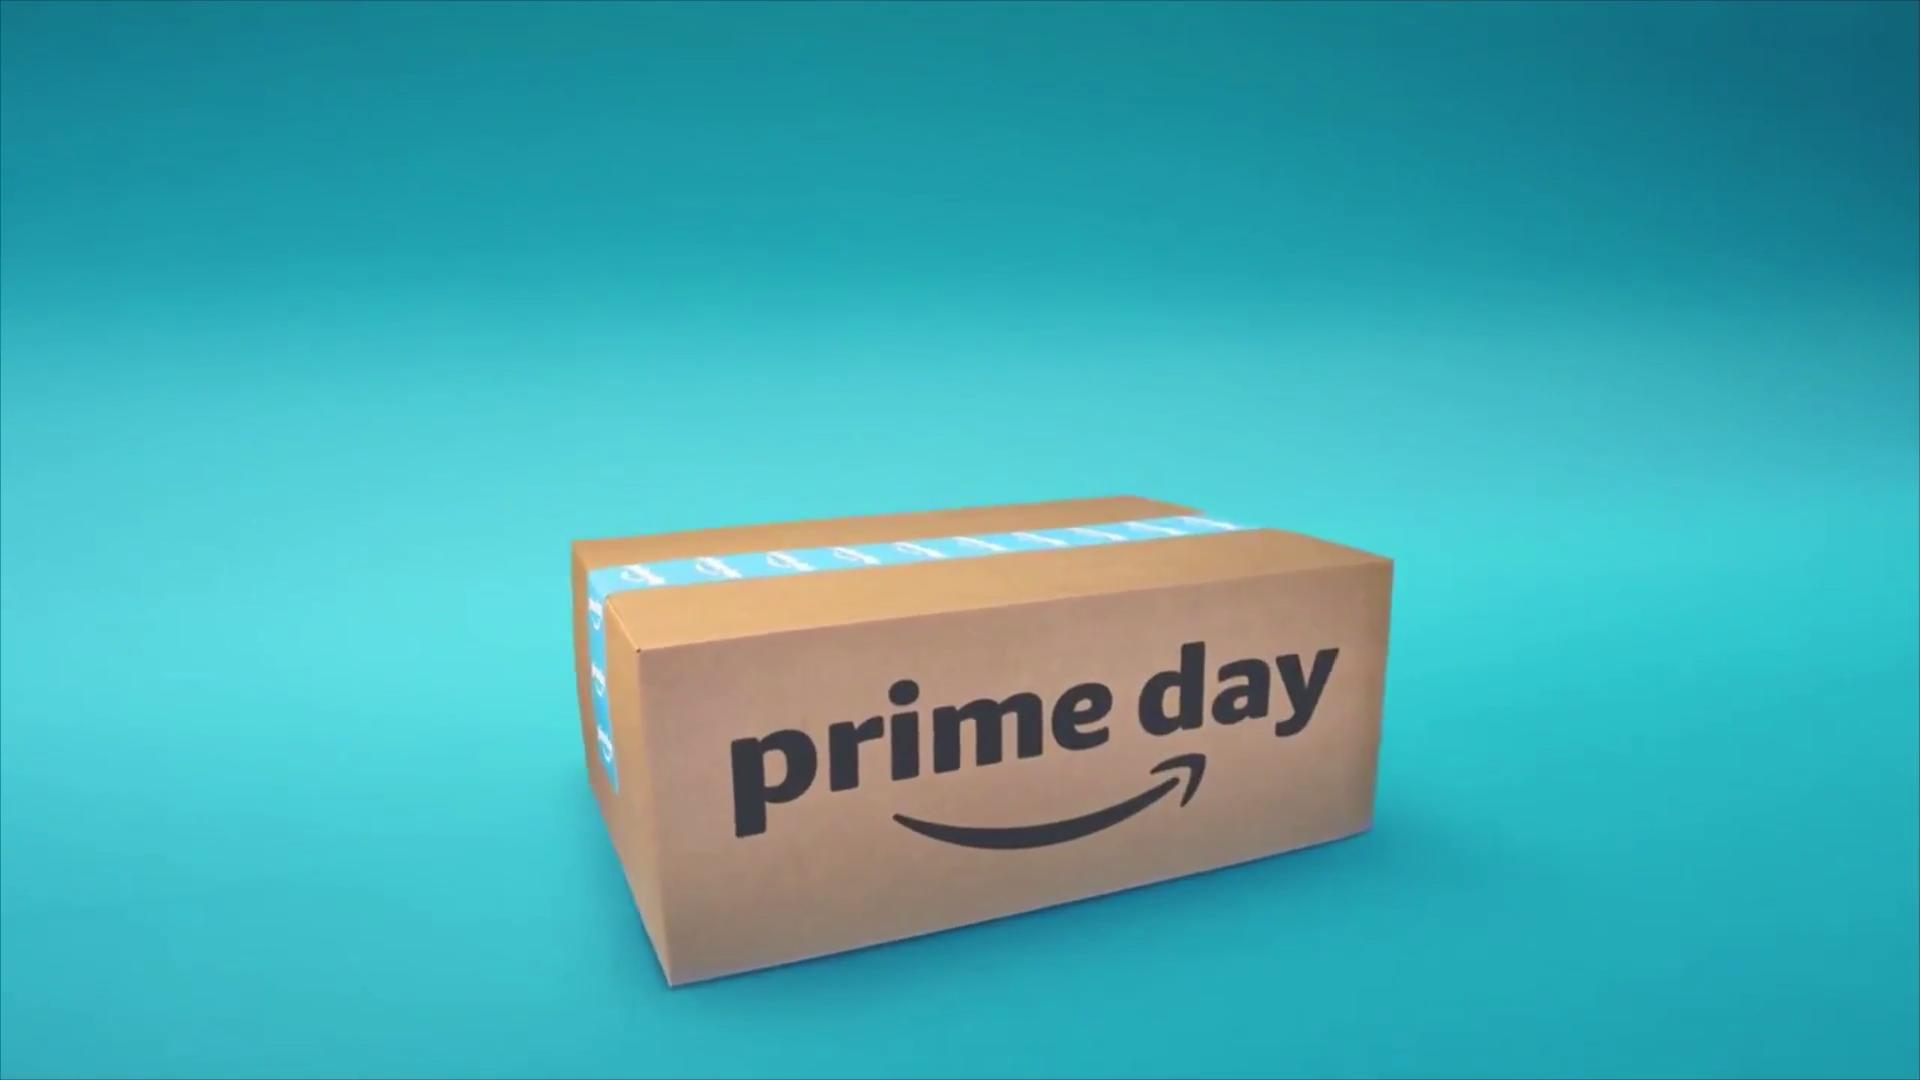 Amazon Prime Day Is Coming: Here's What We Know So Far